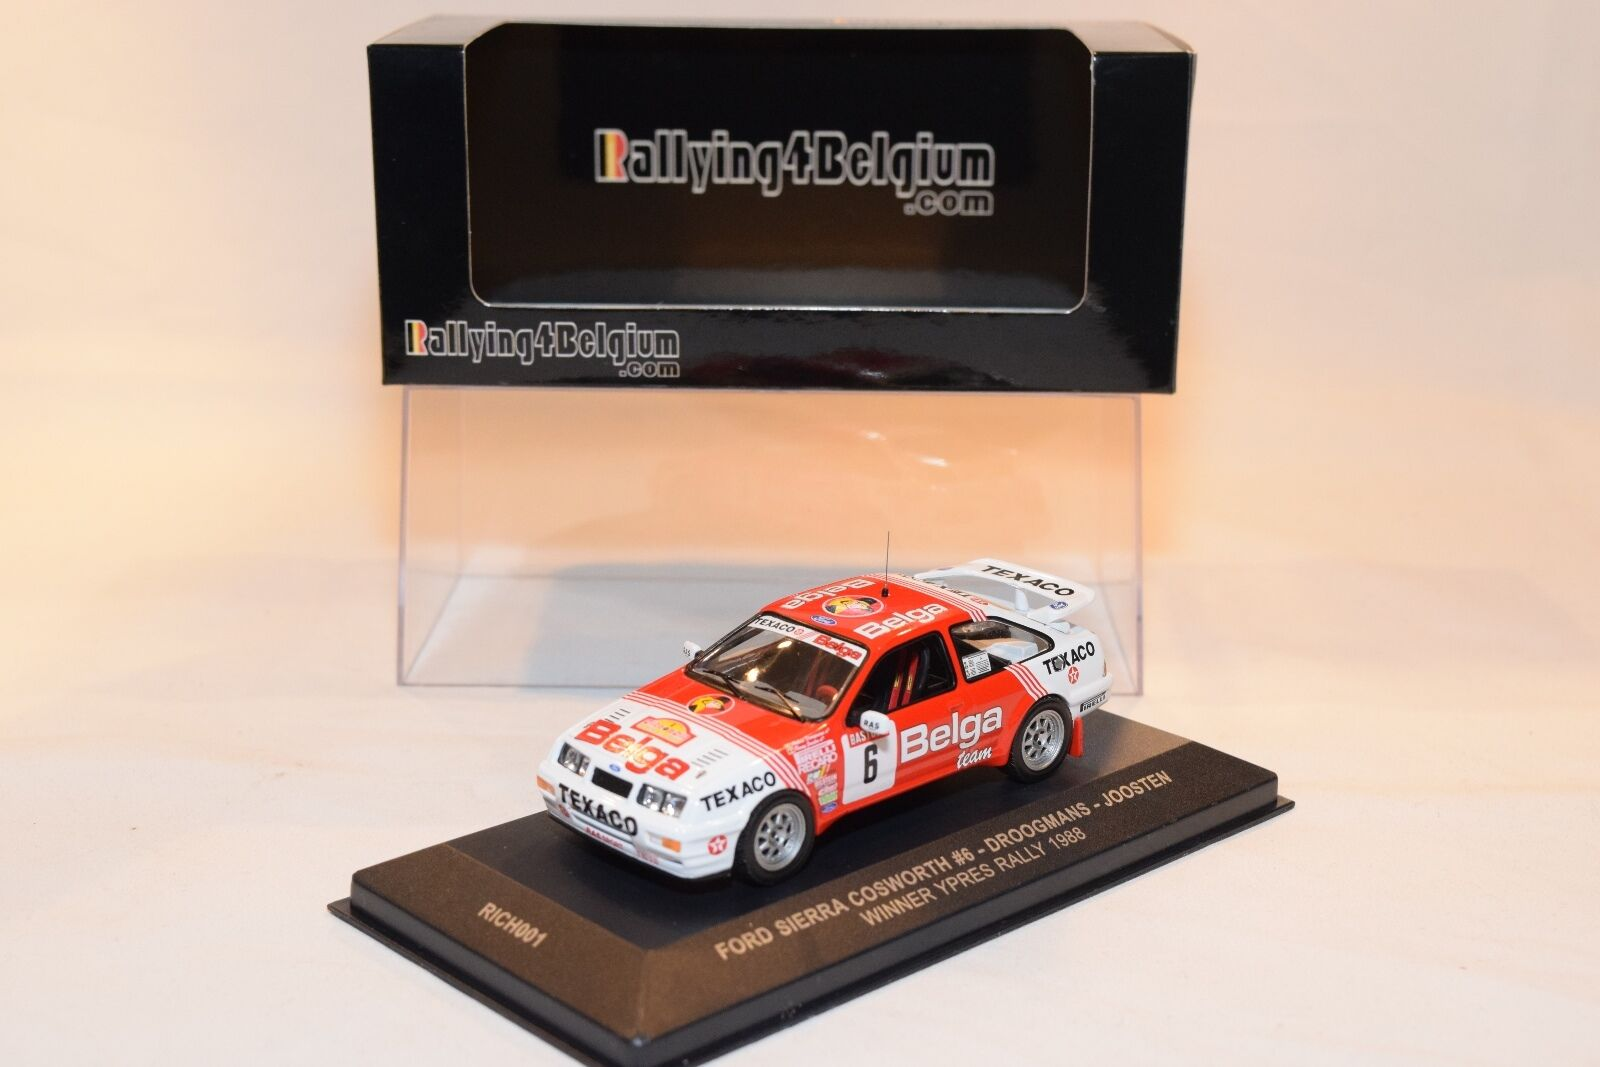 RALLYING4BELGIUM RICH001 FORD SIERRA COSWORTH WINNER YPRES RALLY 1988 RARE